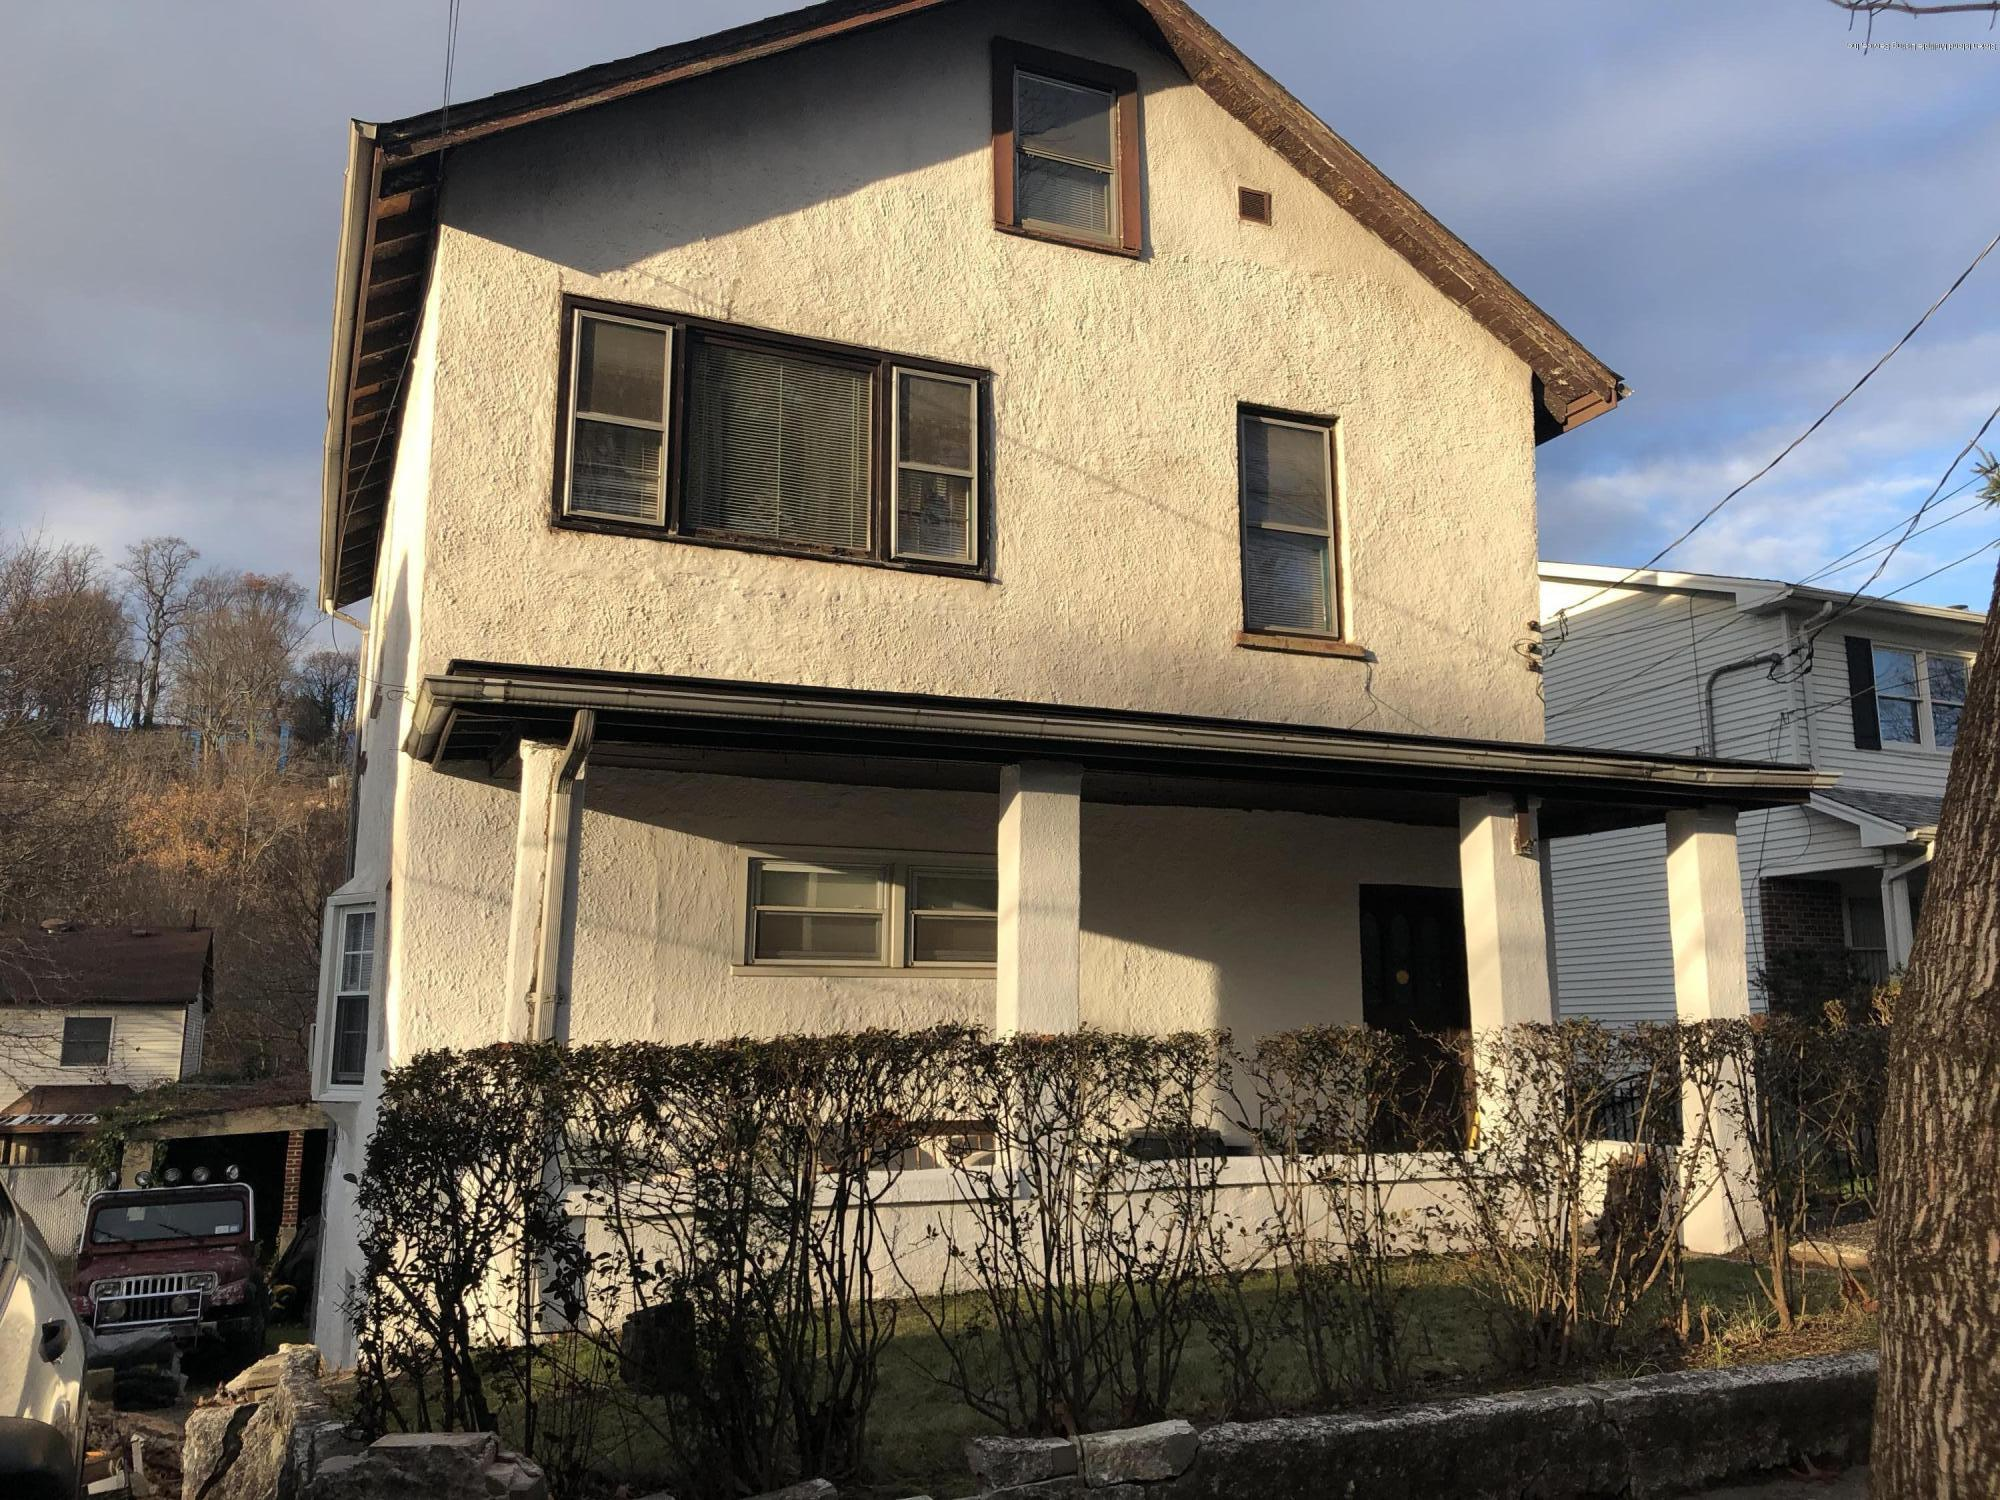 169 St. George Road,Staten Island,New York,10306,United States,3 Bedrooms Bedrooms,7 Rooms Rooms,2 BathroomsBathrooms,Residential,St. George,1124600